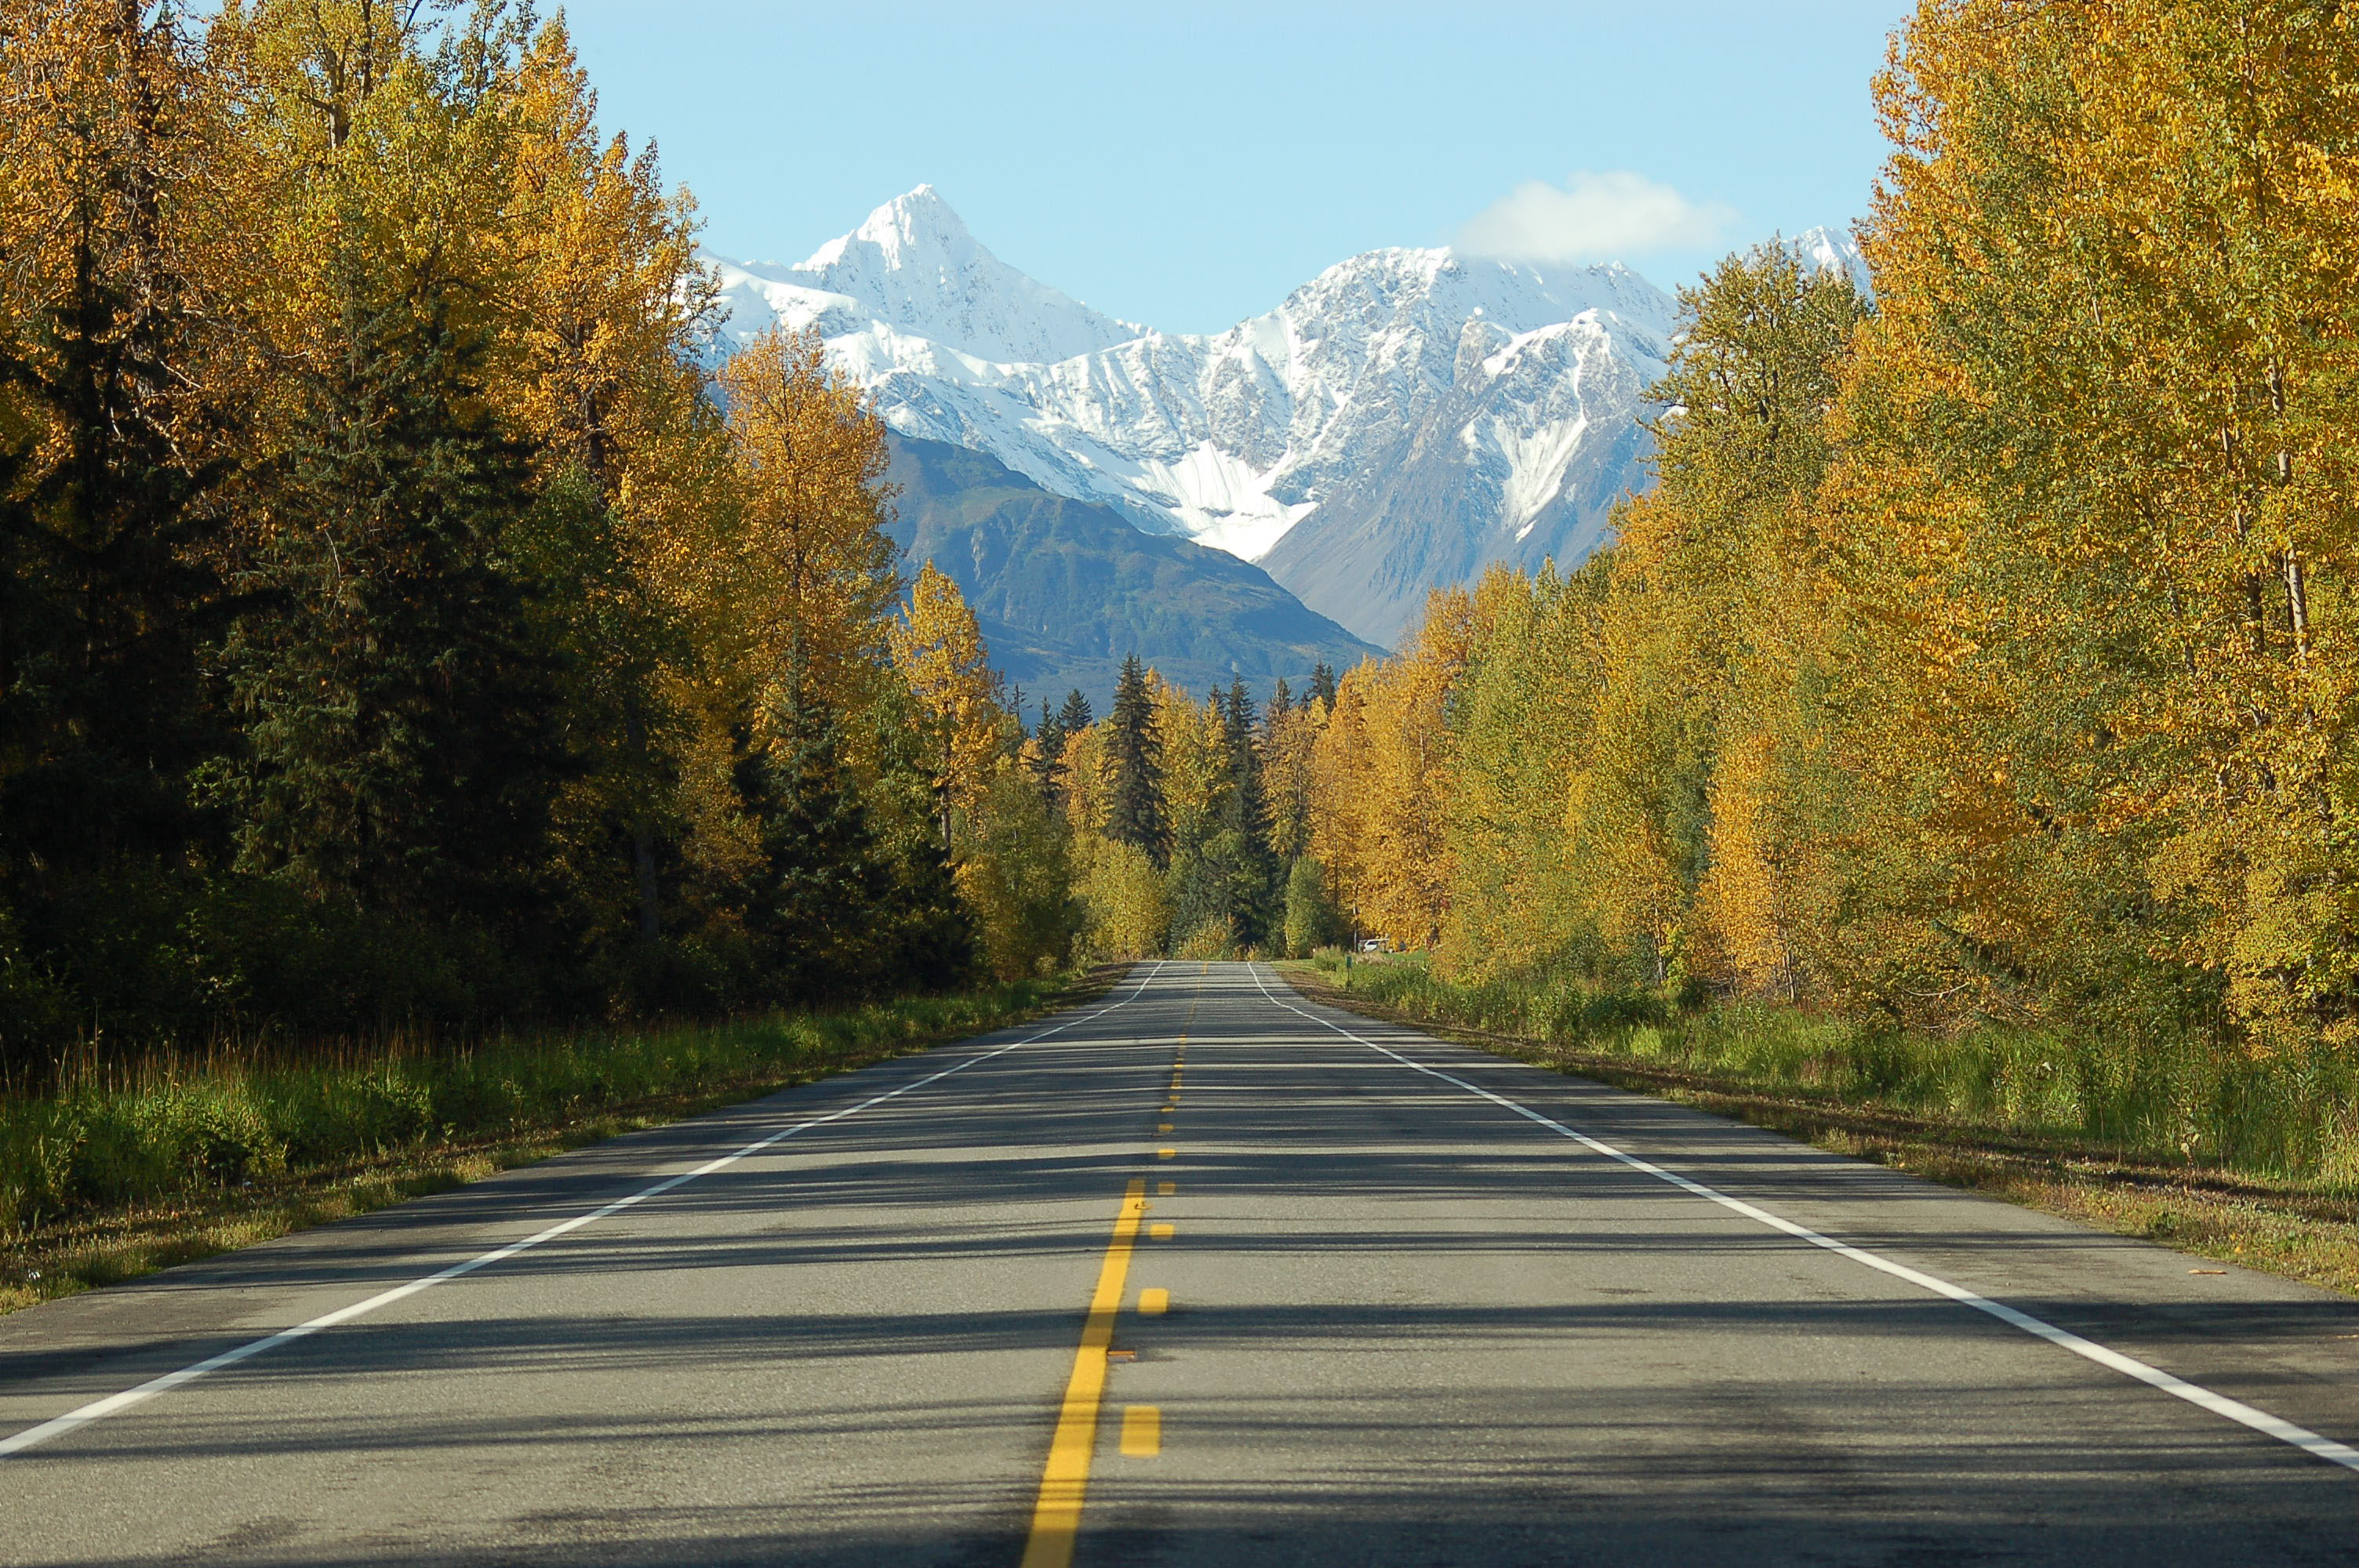 Haines Highway - Valley of the Eagles - All Photos